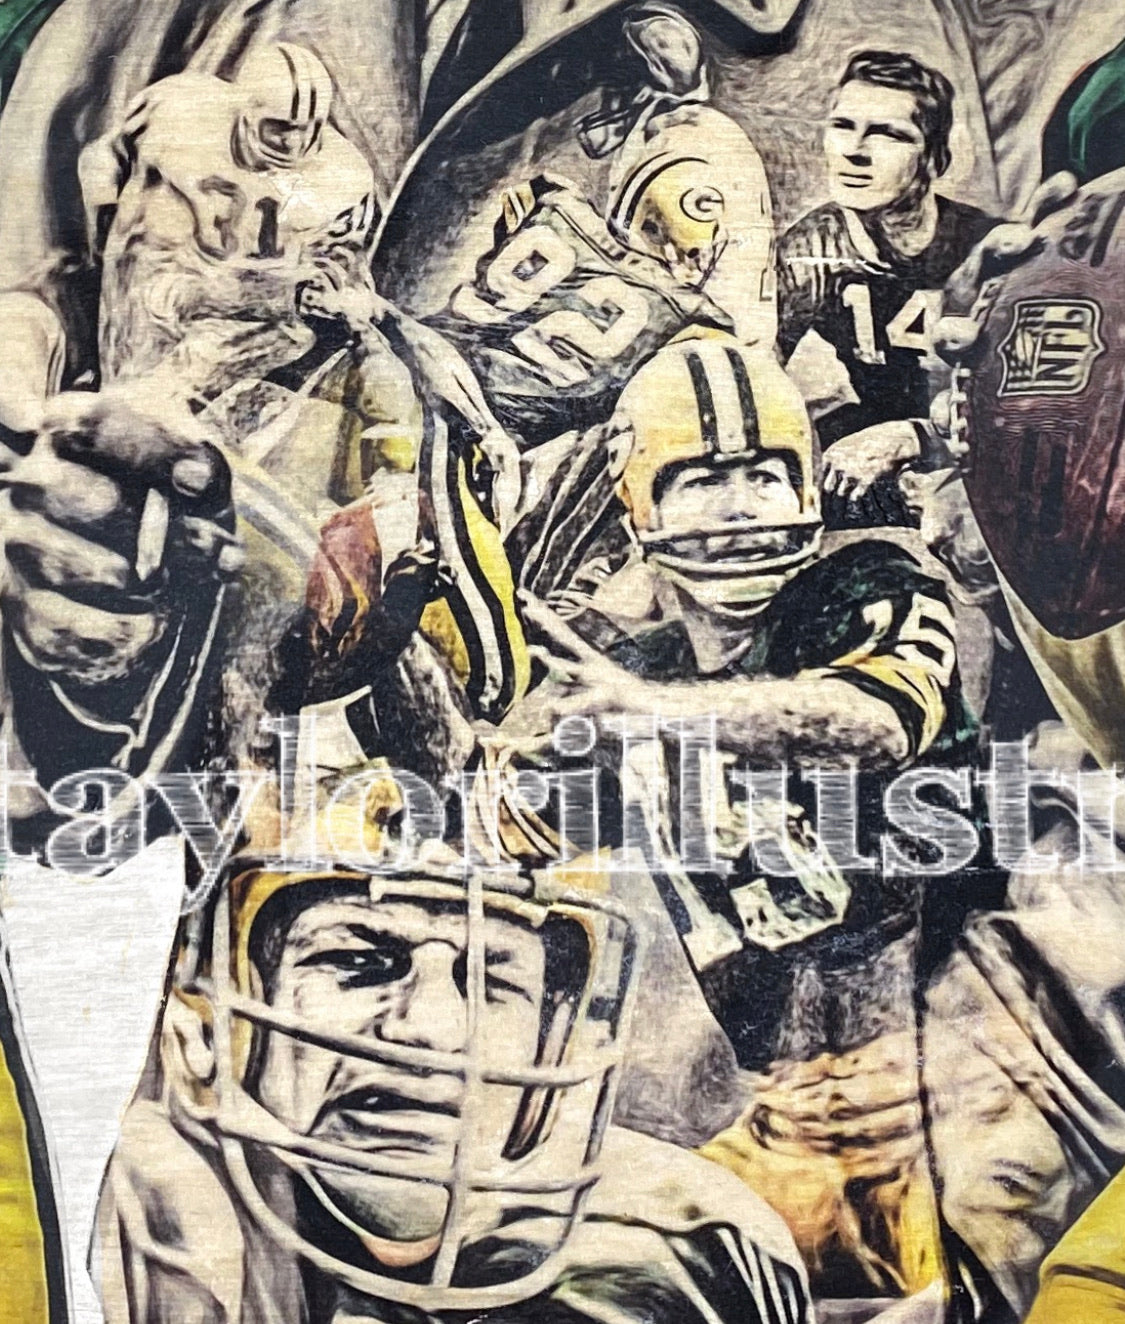 """Green Bay Legends"" (Favre, Lombardi, Rogers..) Green Bay Packers - NFL Football"